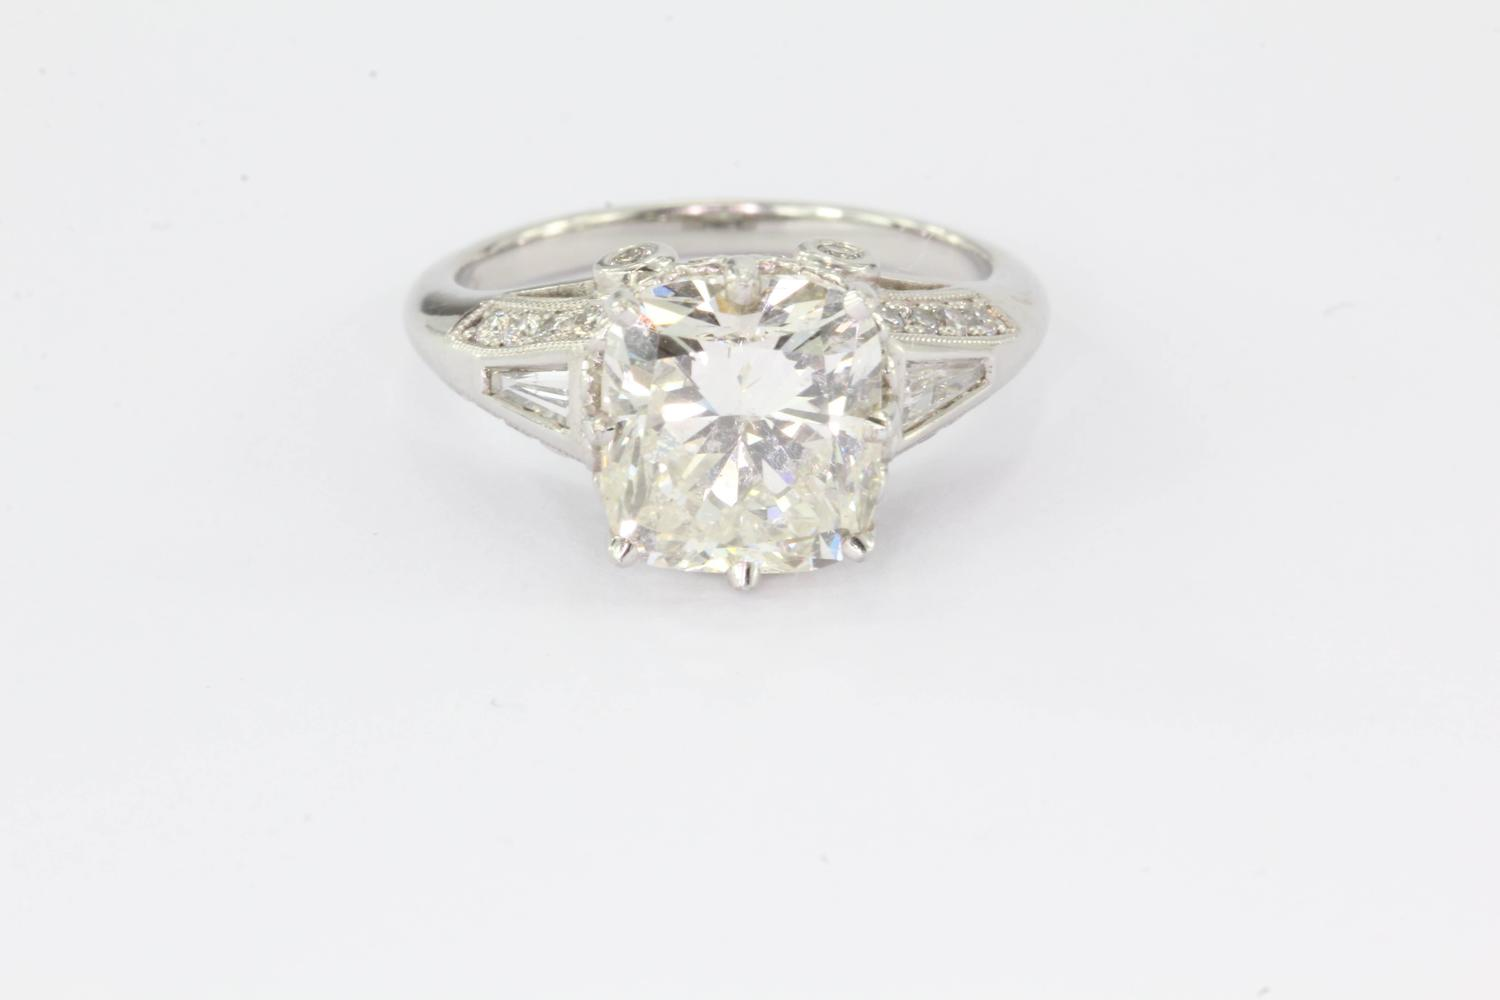 4 Carat Diamond Cushion Cut Platinum Engagement Ring For Sale at 1stdibs